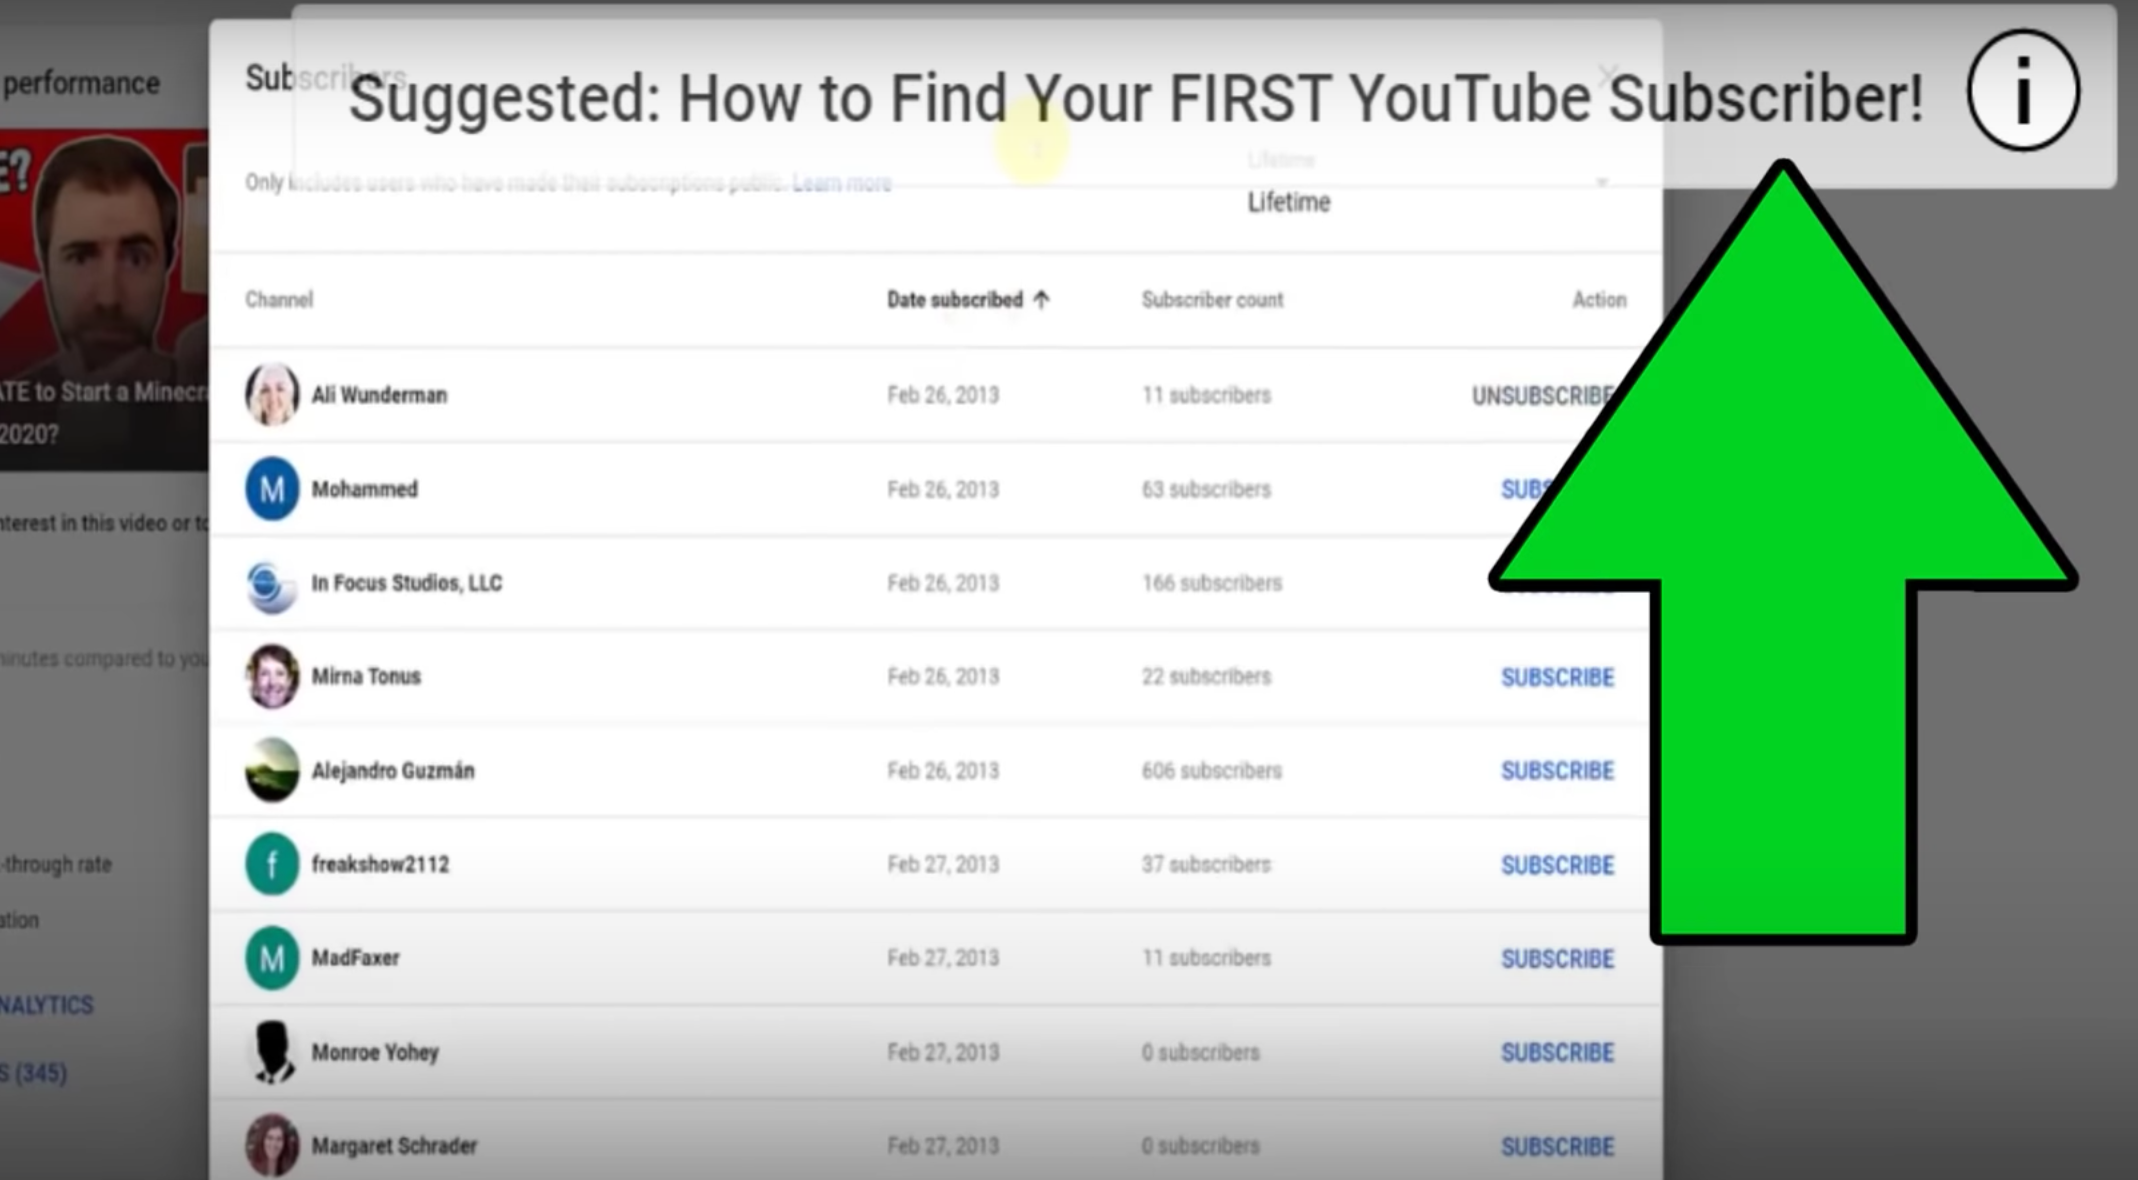 How to Add Cards info website link in Youtube 2021